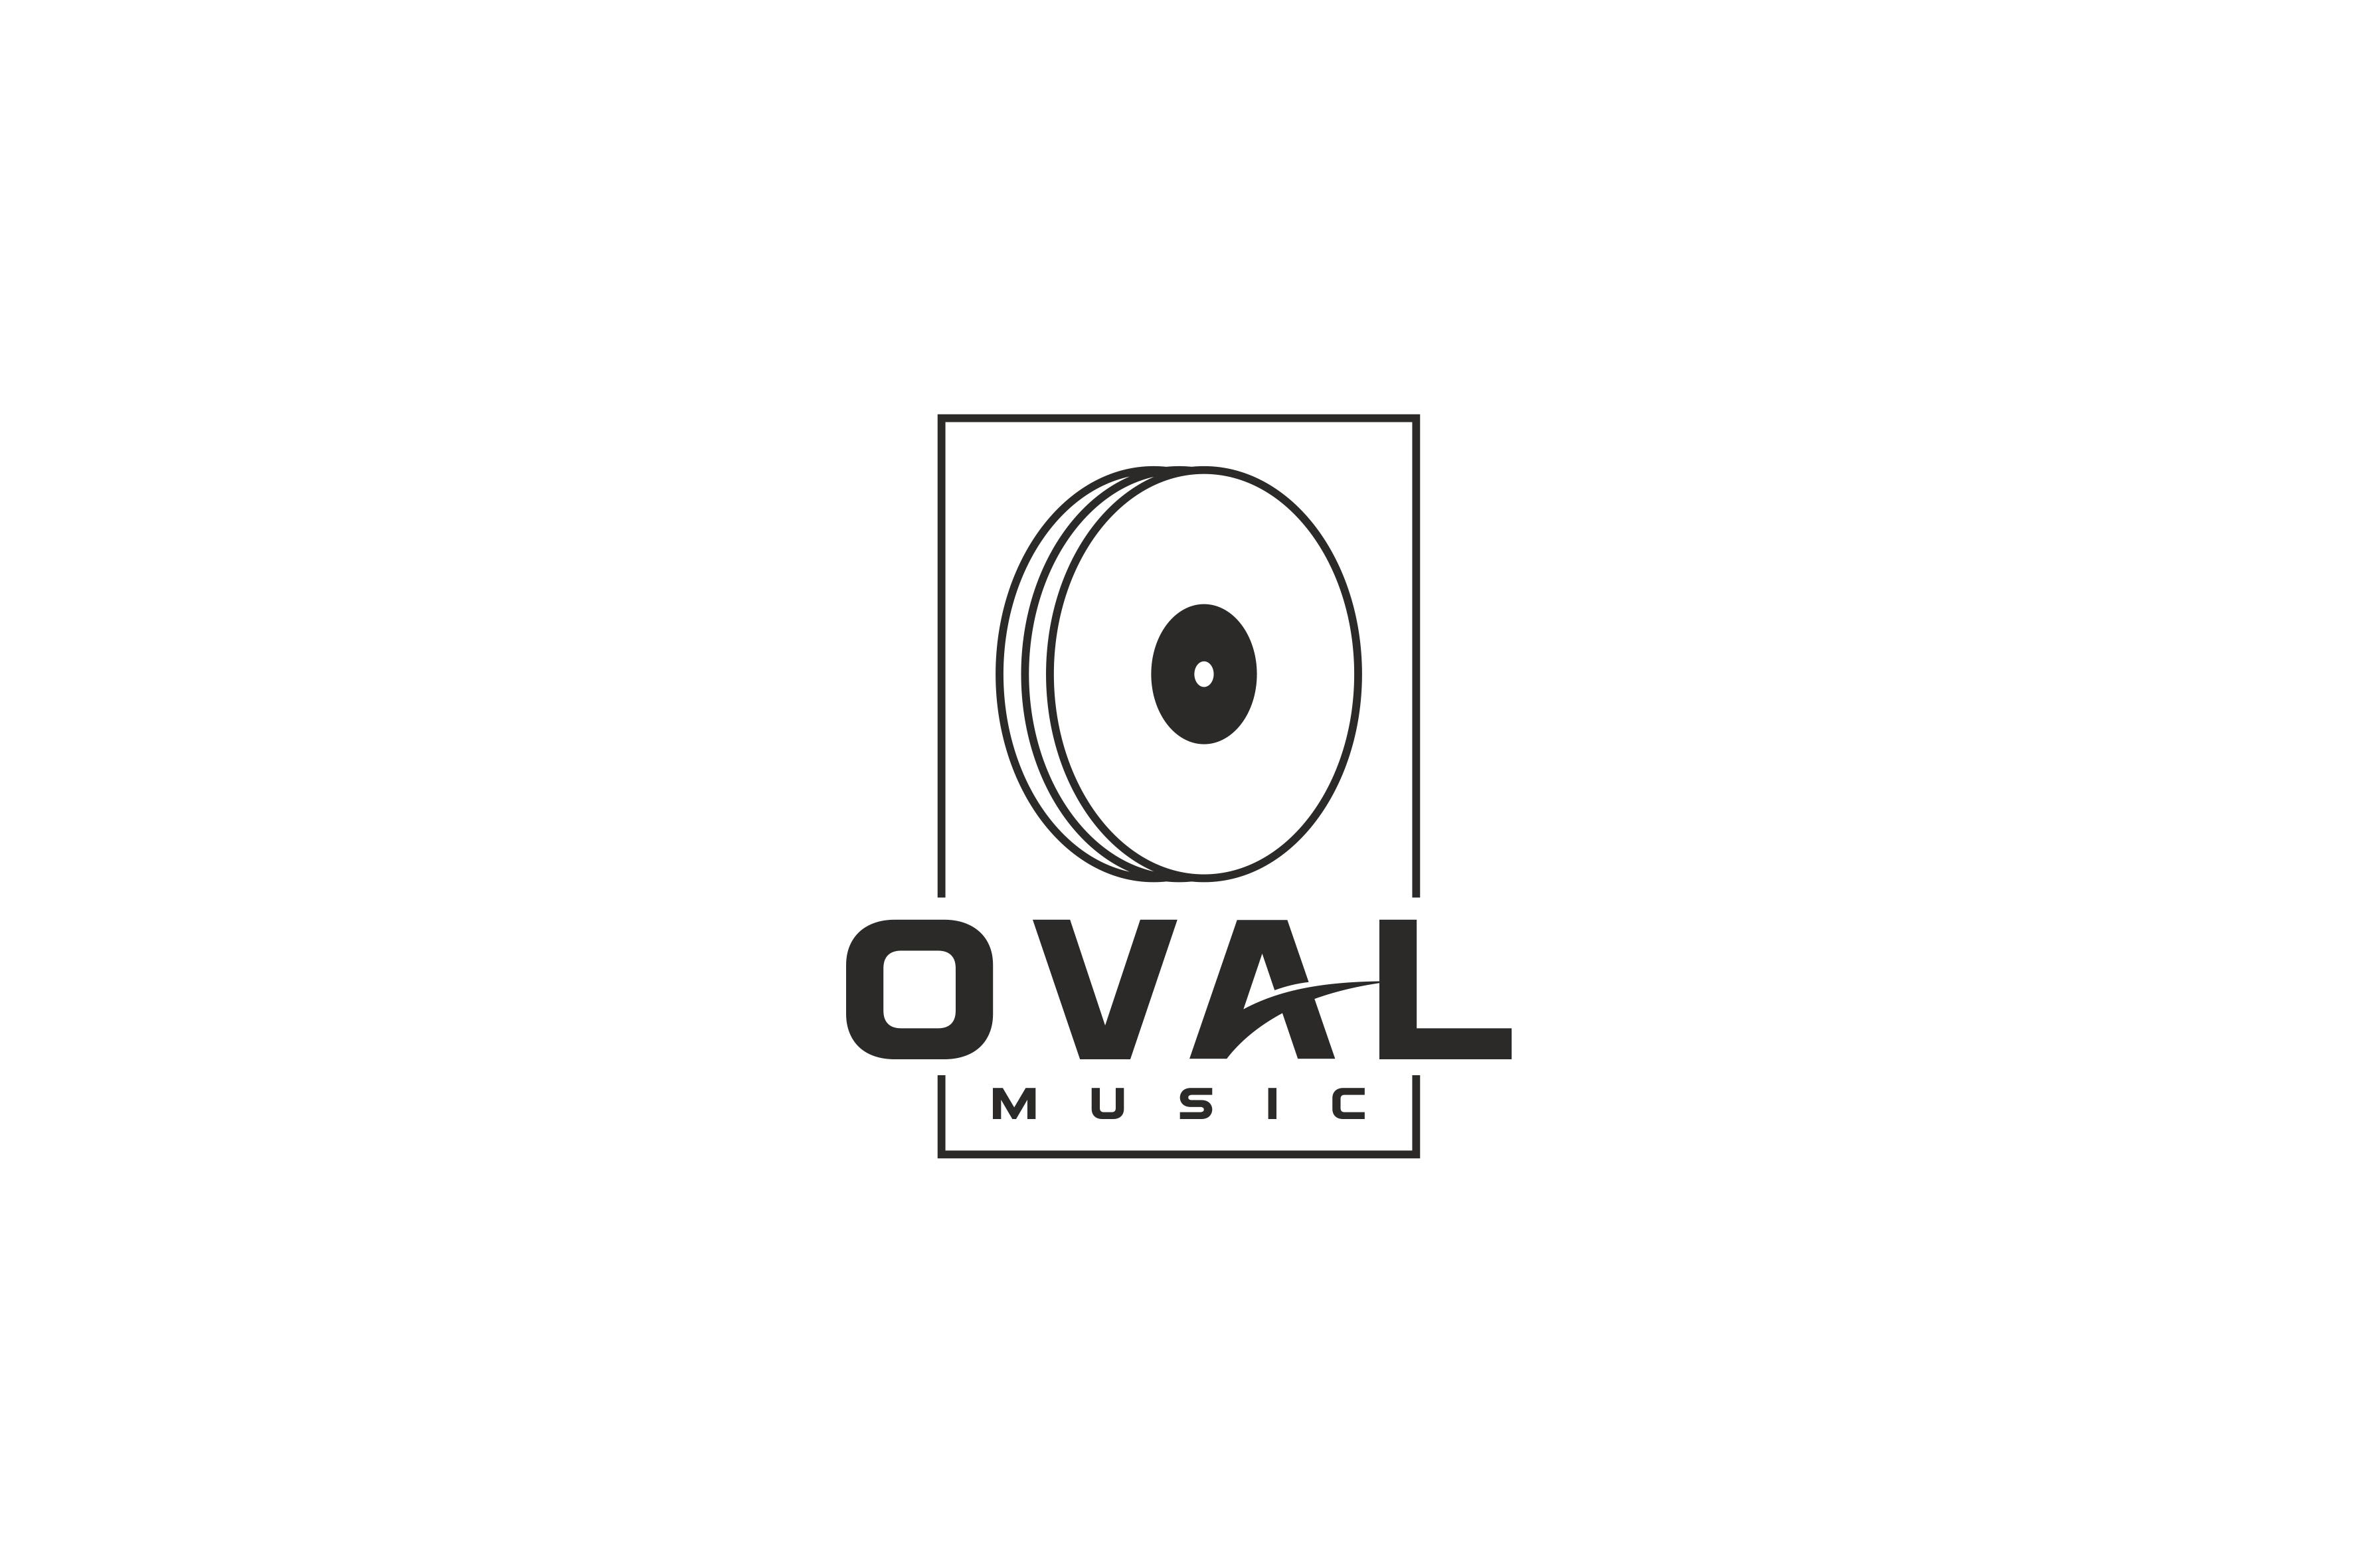 Oval Music